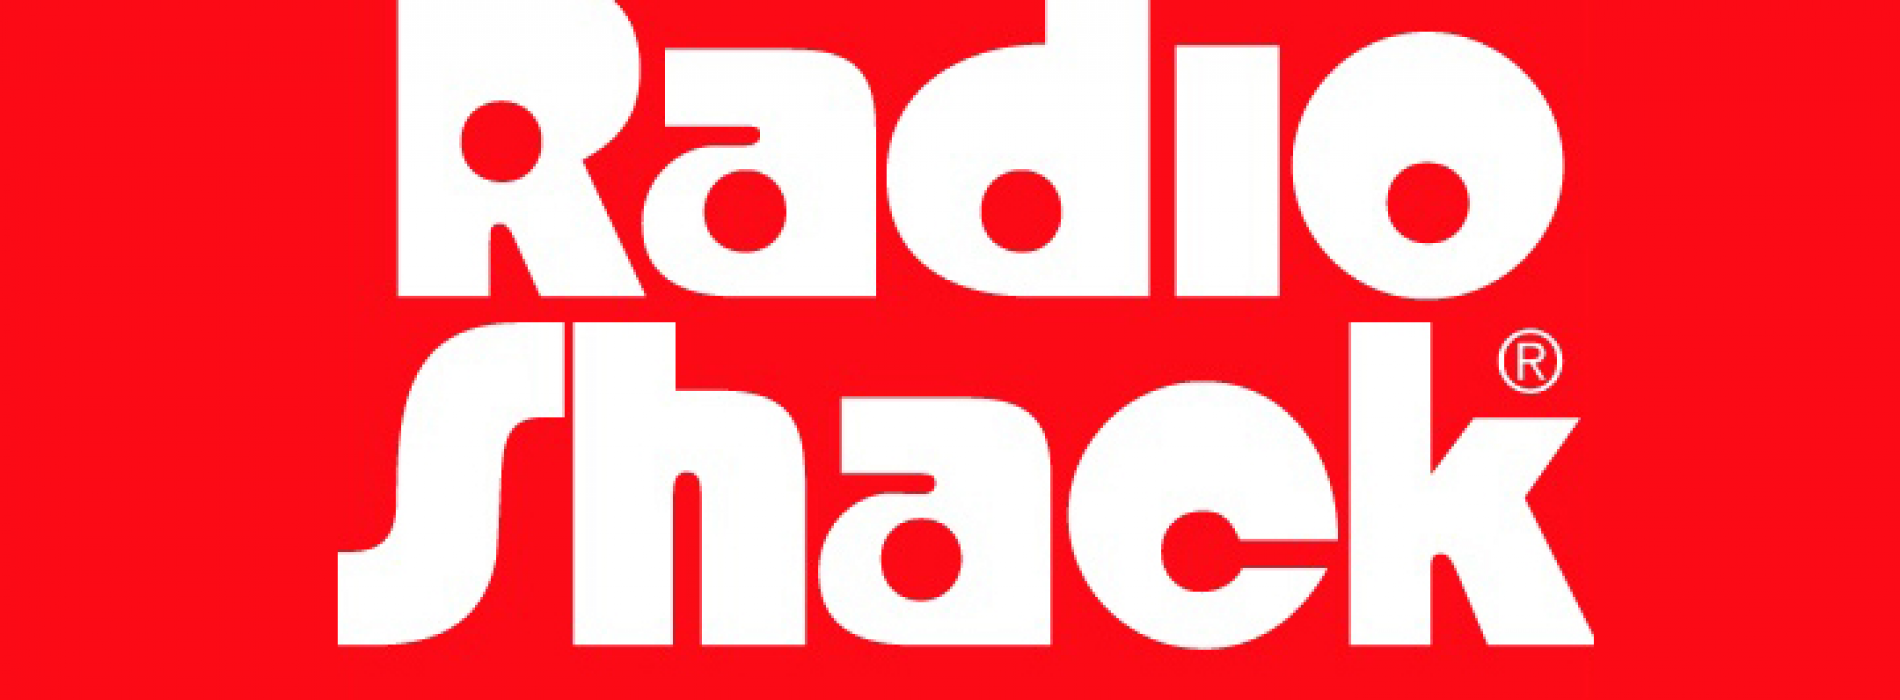 RadioShack's no-contract rate plans leaked